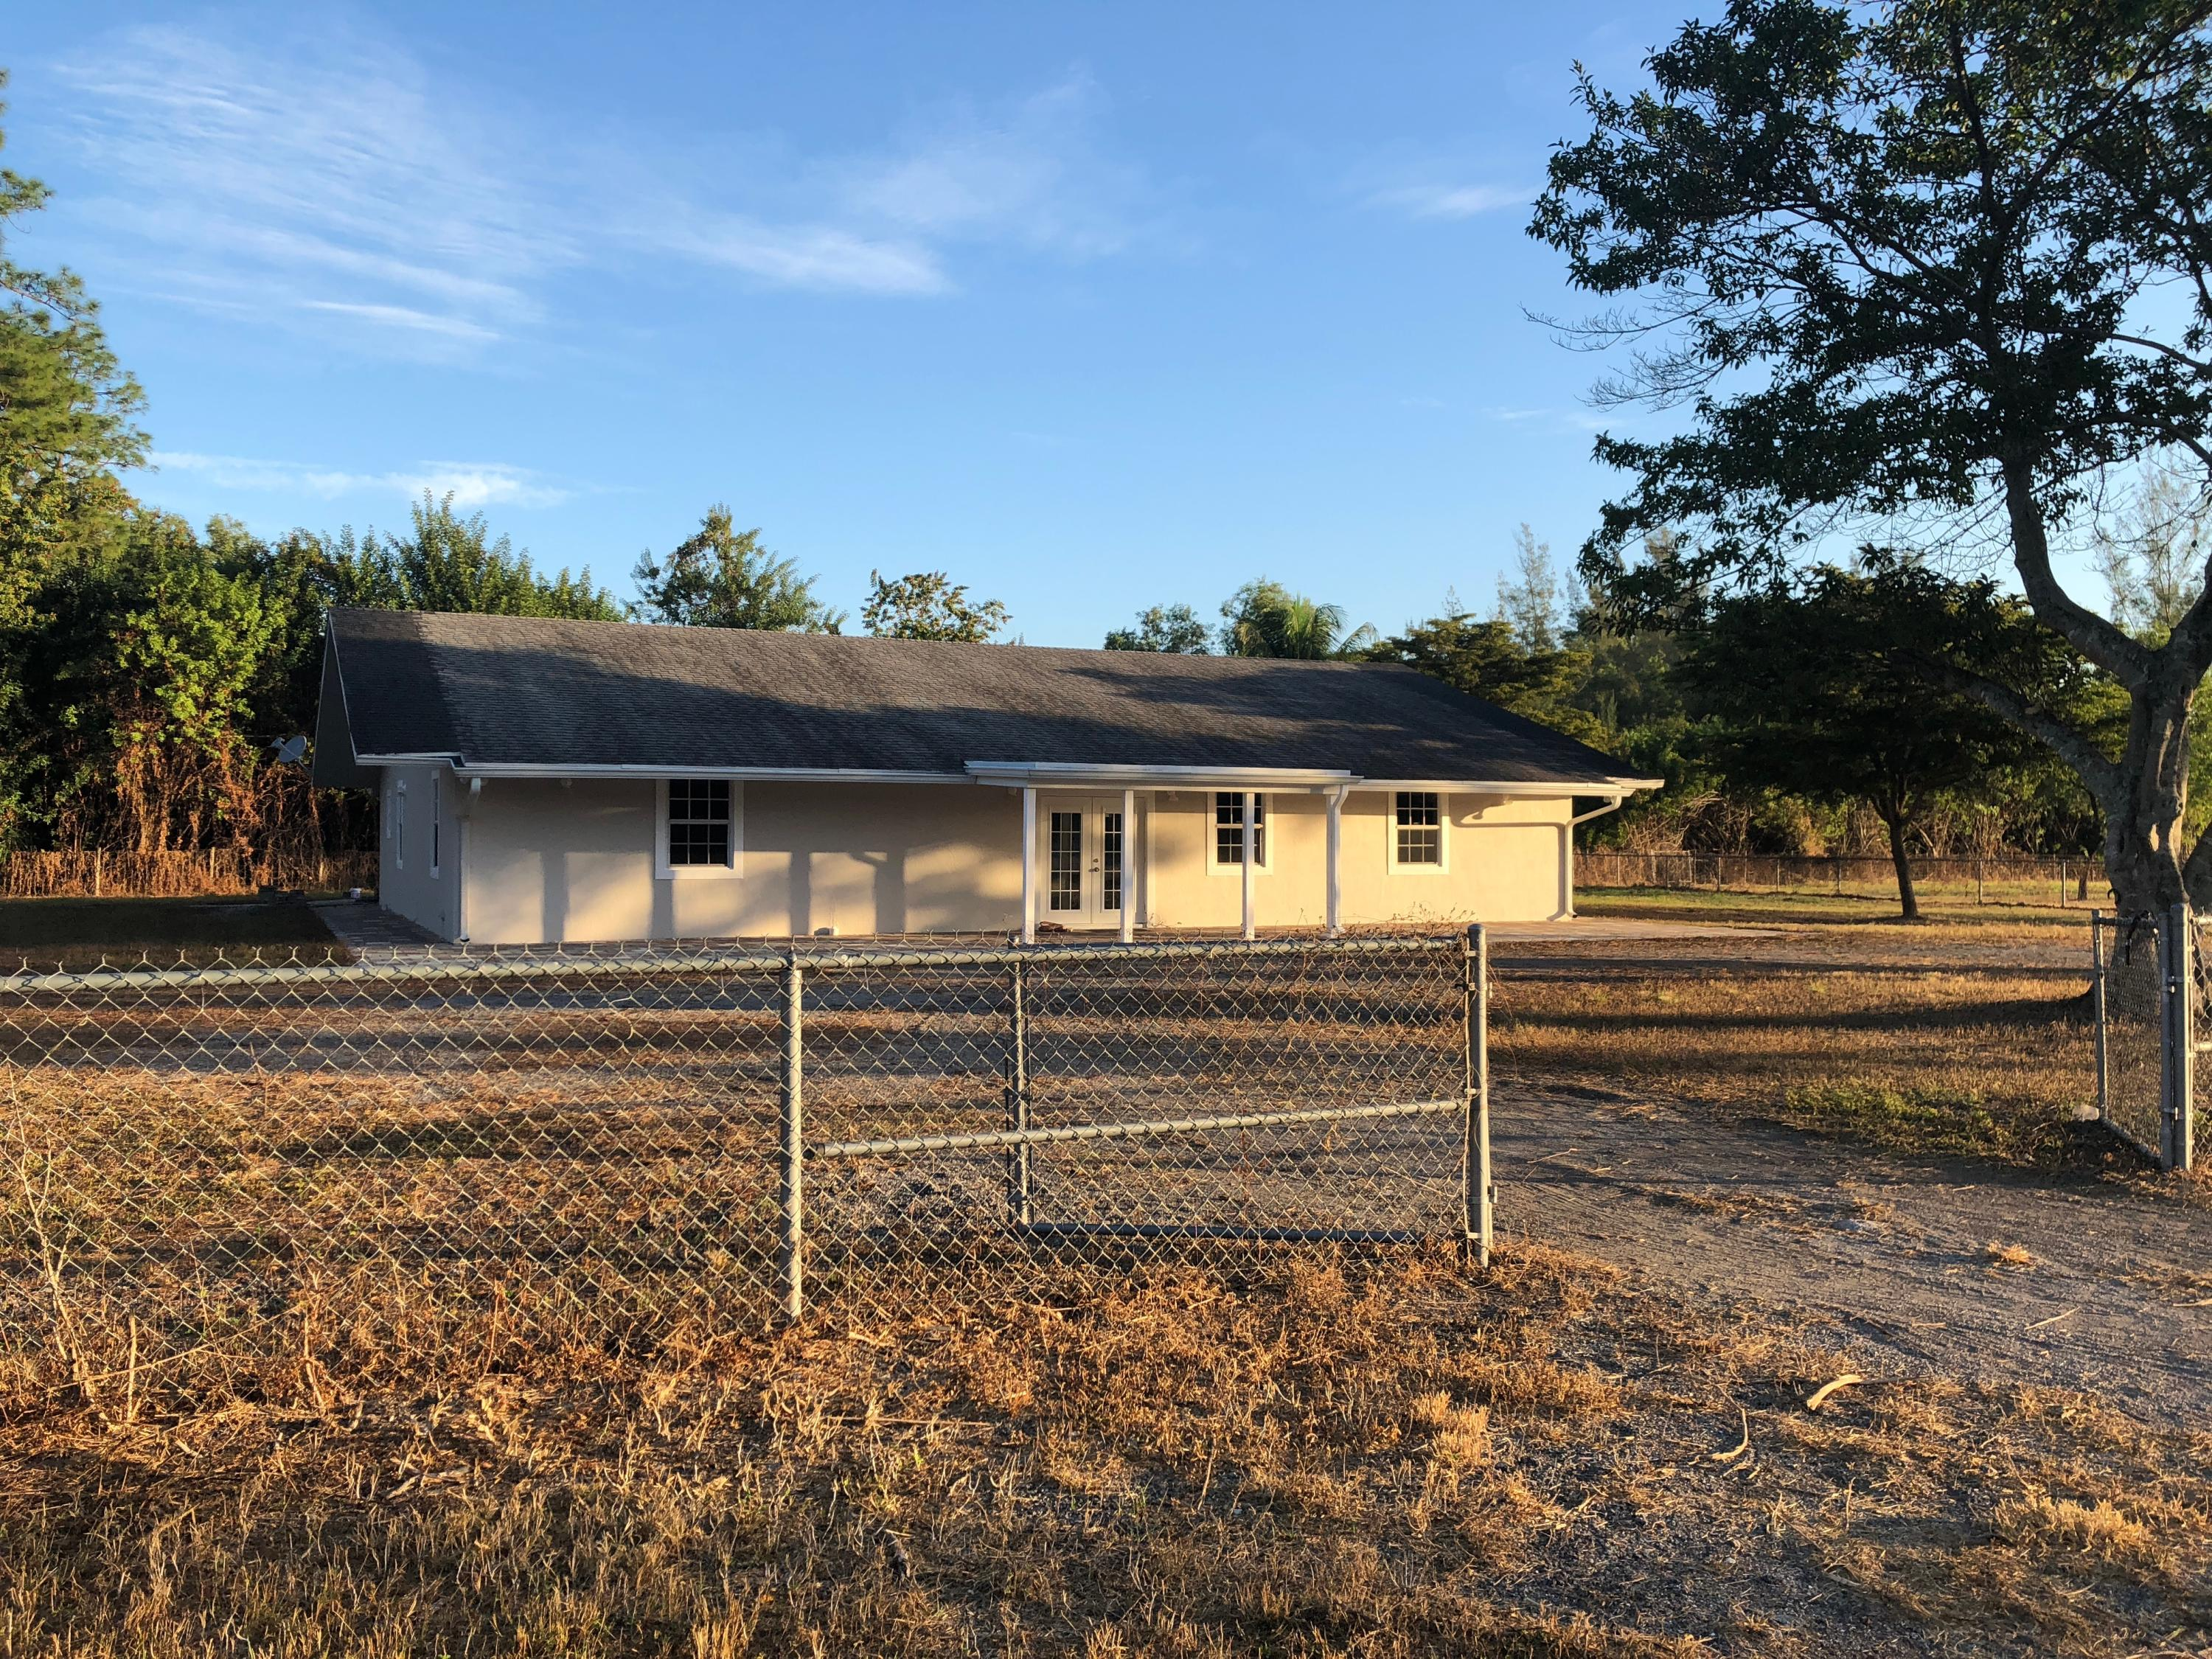 2221 F Road, Loxahatchee Groves, FL 33470